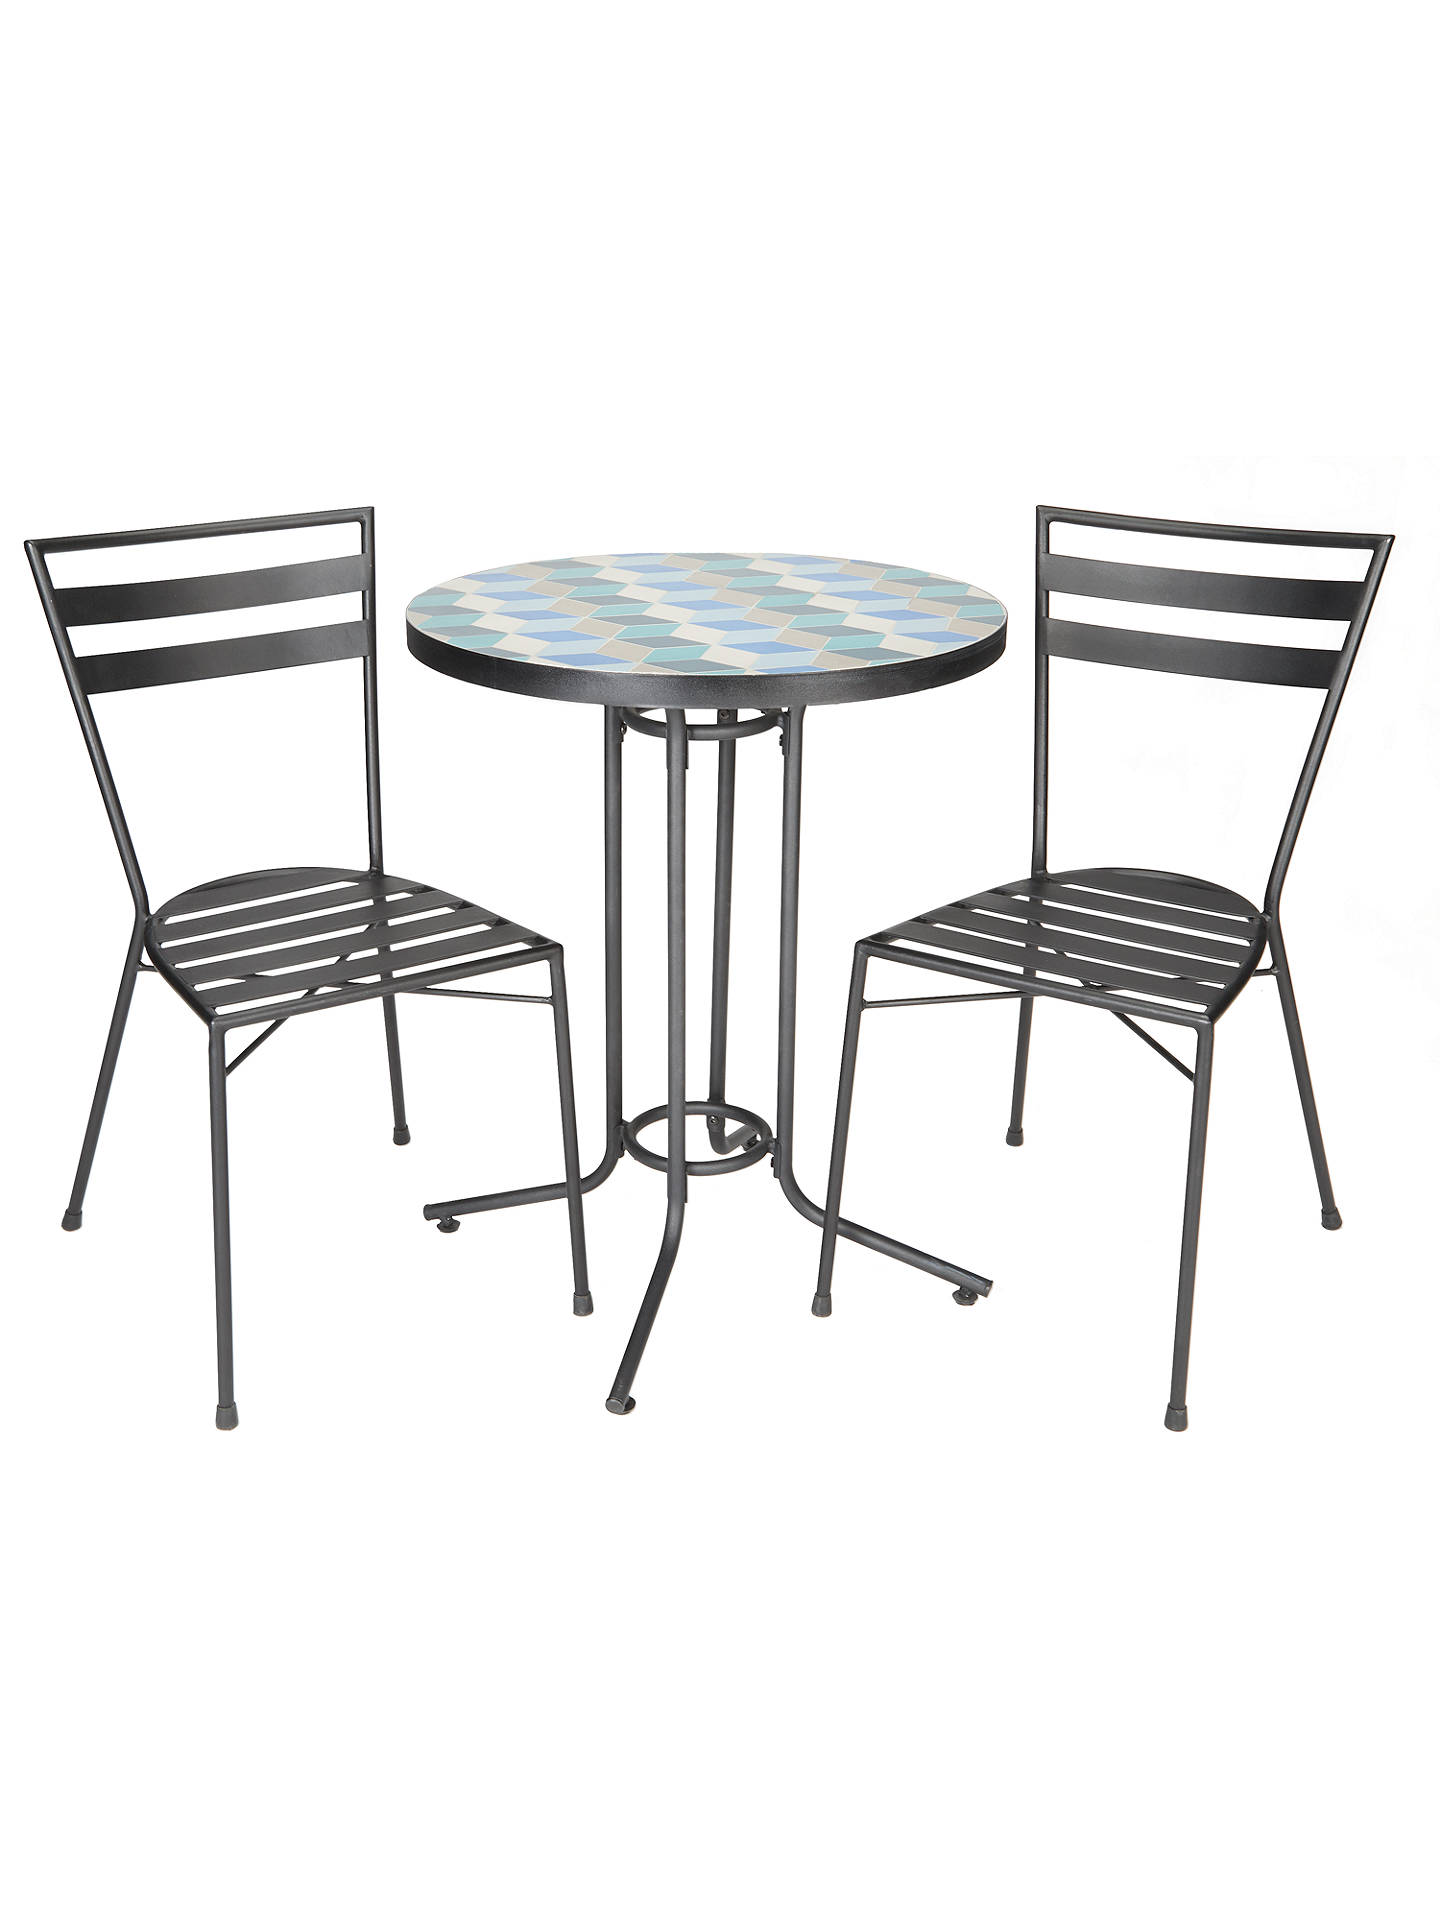 John Lewis Partners Suri 2 Seater Mosaic Bistro Garden Table And Chairs Set